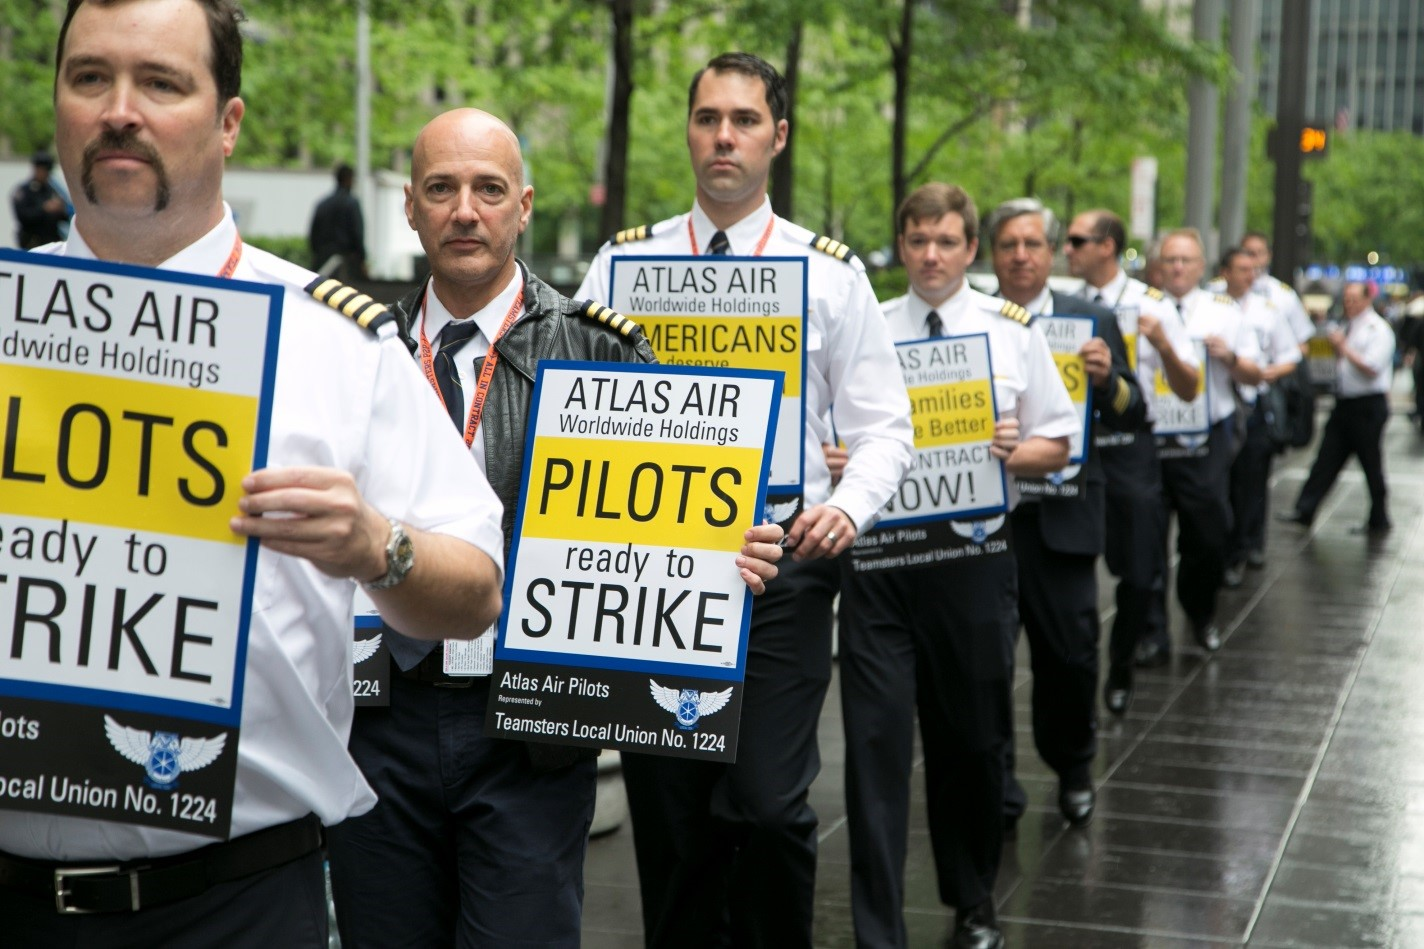 Pilots picket AAWW annual meeting